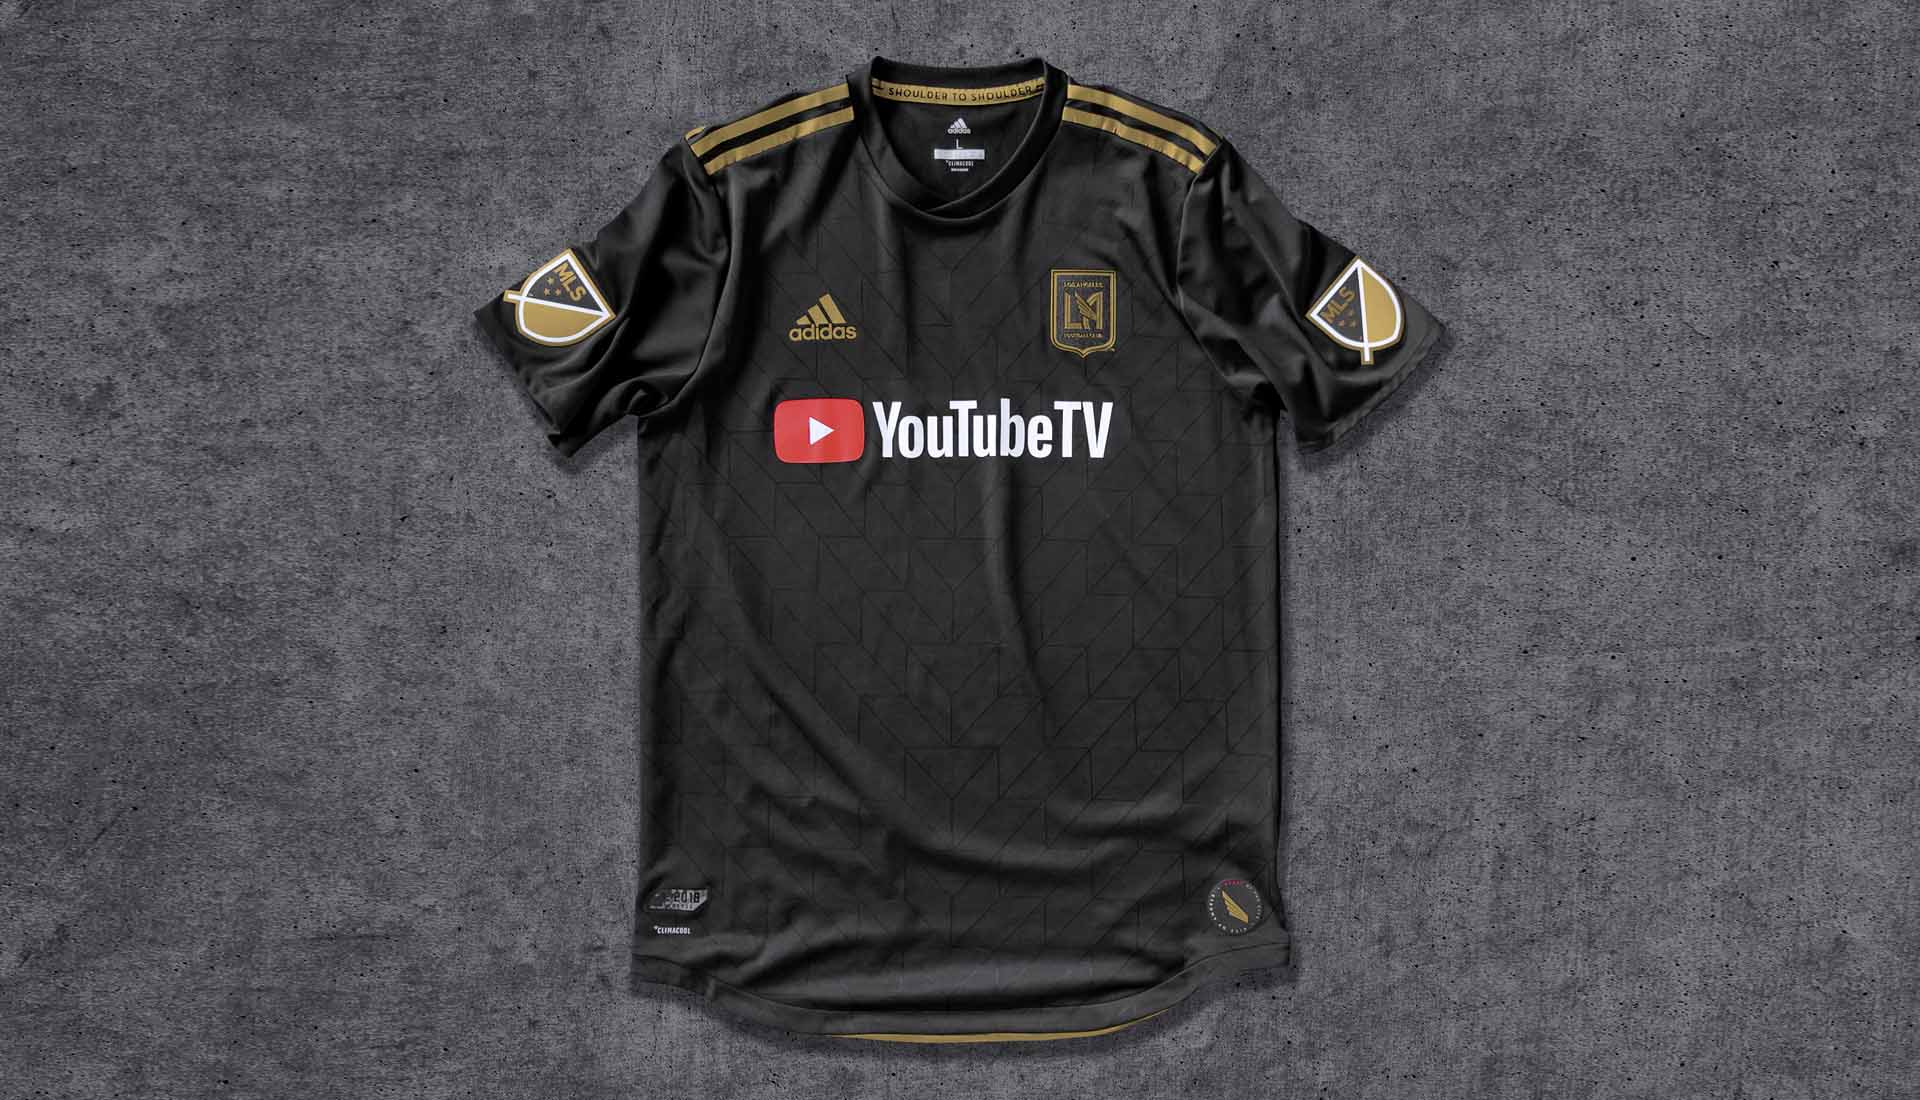 bcfb989eaf8 LAFC Home Shirt Design Q A With Inigo Turner. 27 February 2018